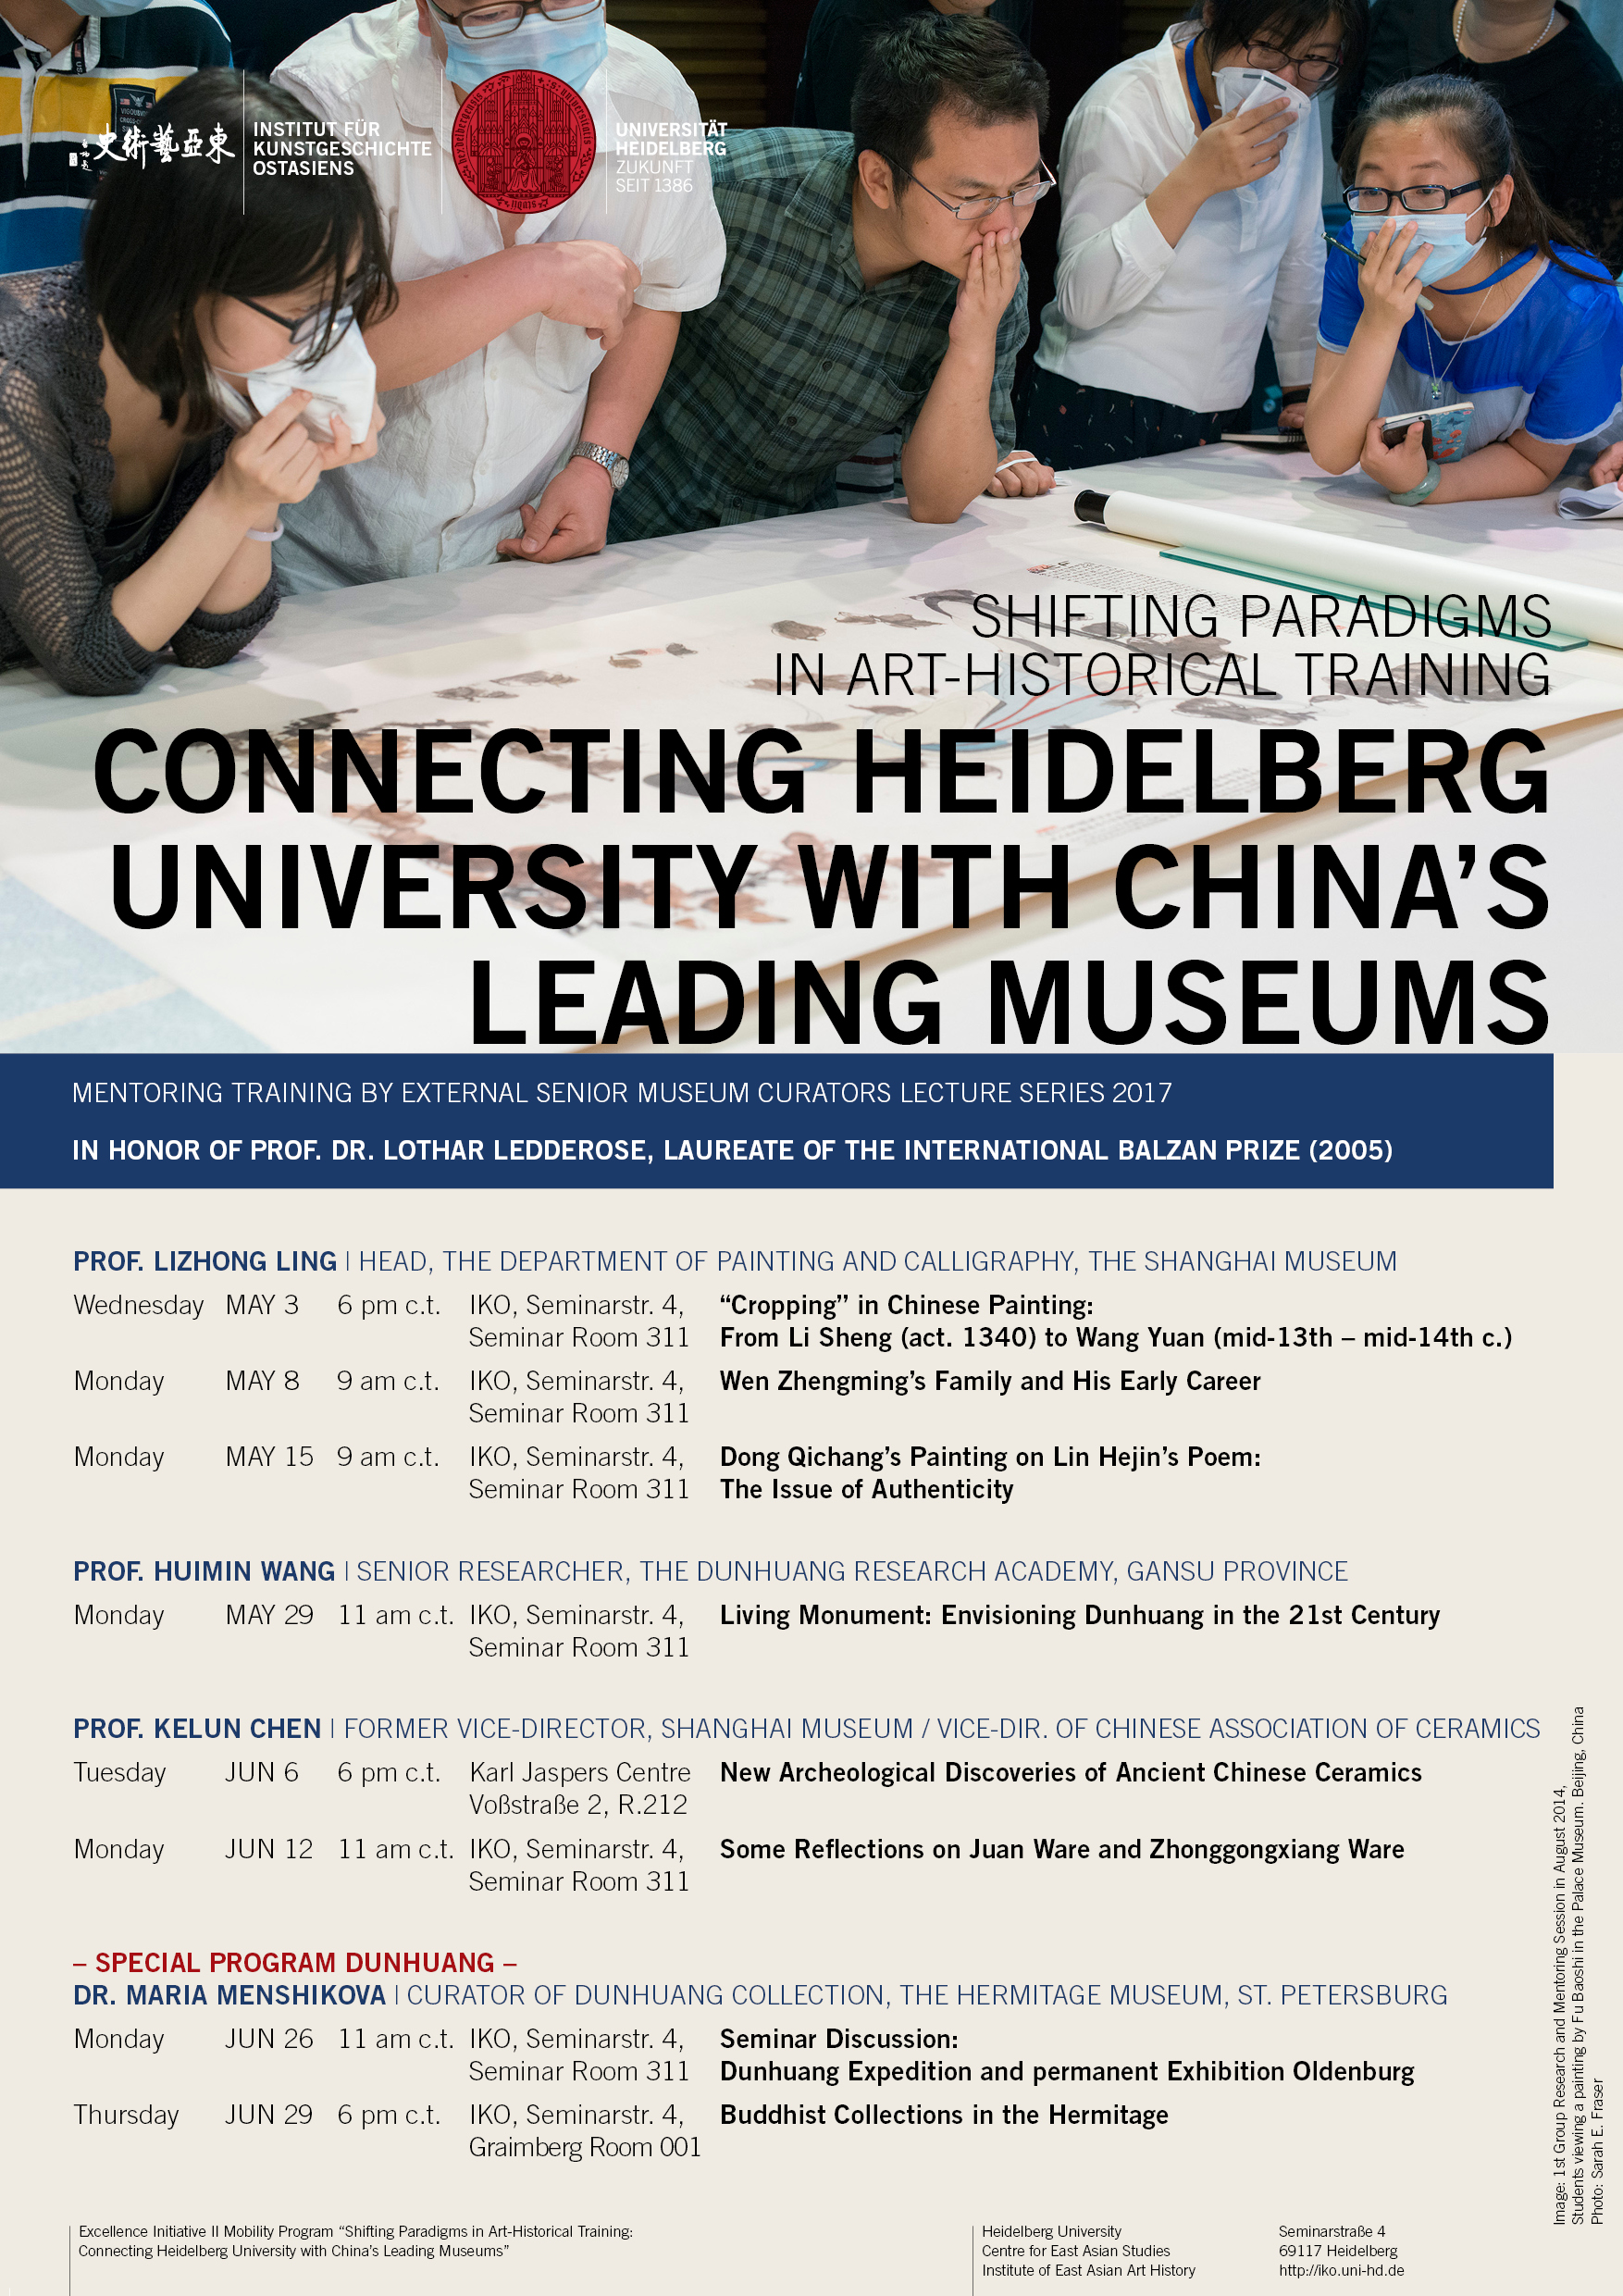 3. Mai – 29. Juni 2017 | Connecting Heidelberg University with China's Leading Museums